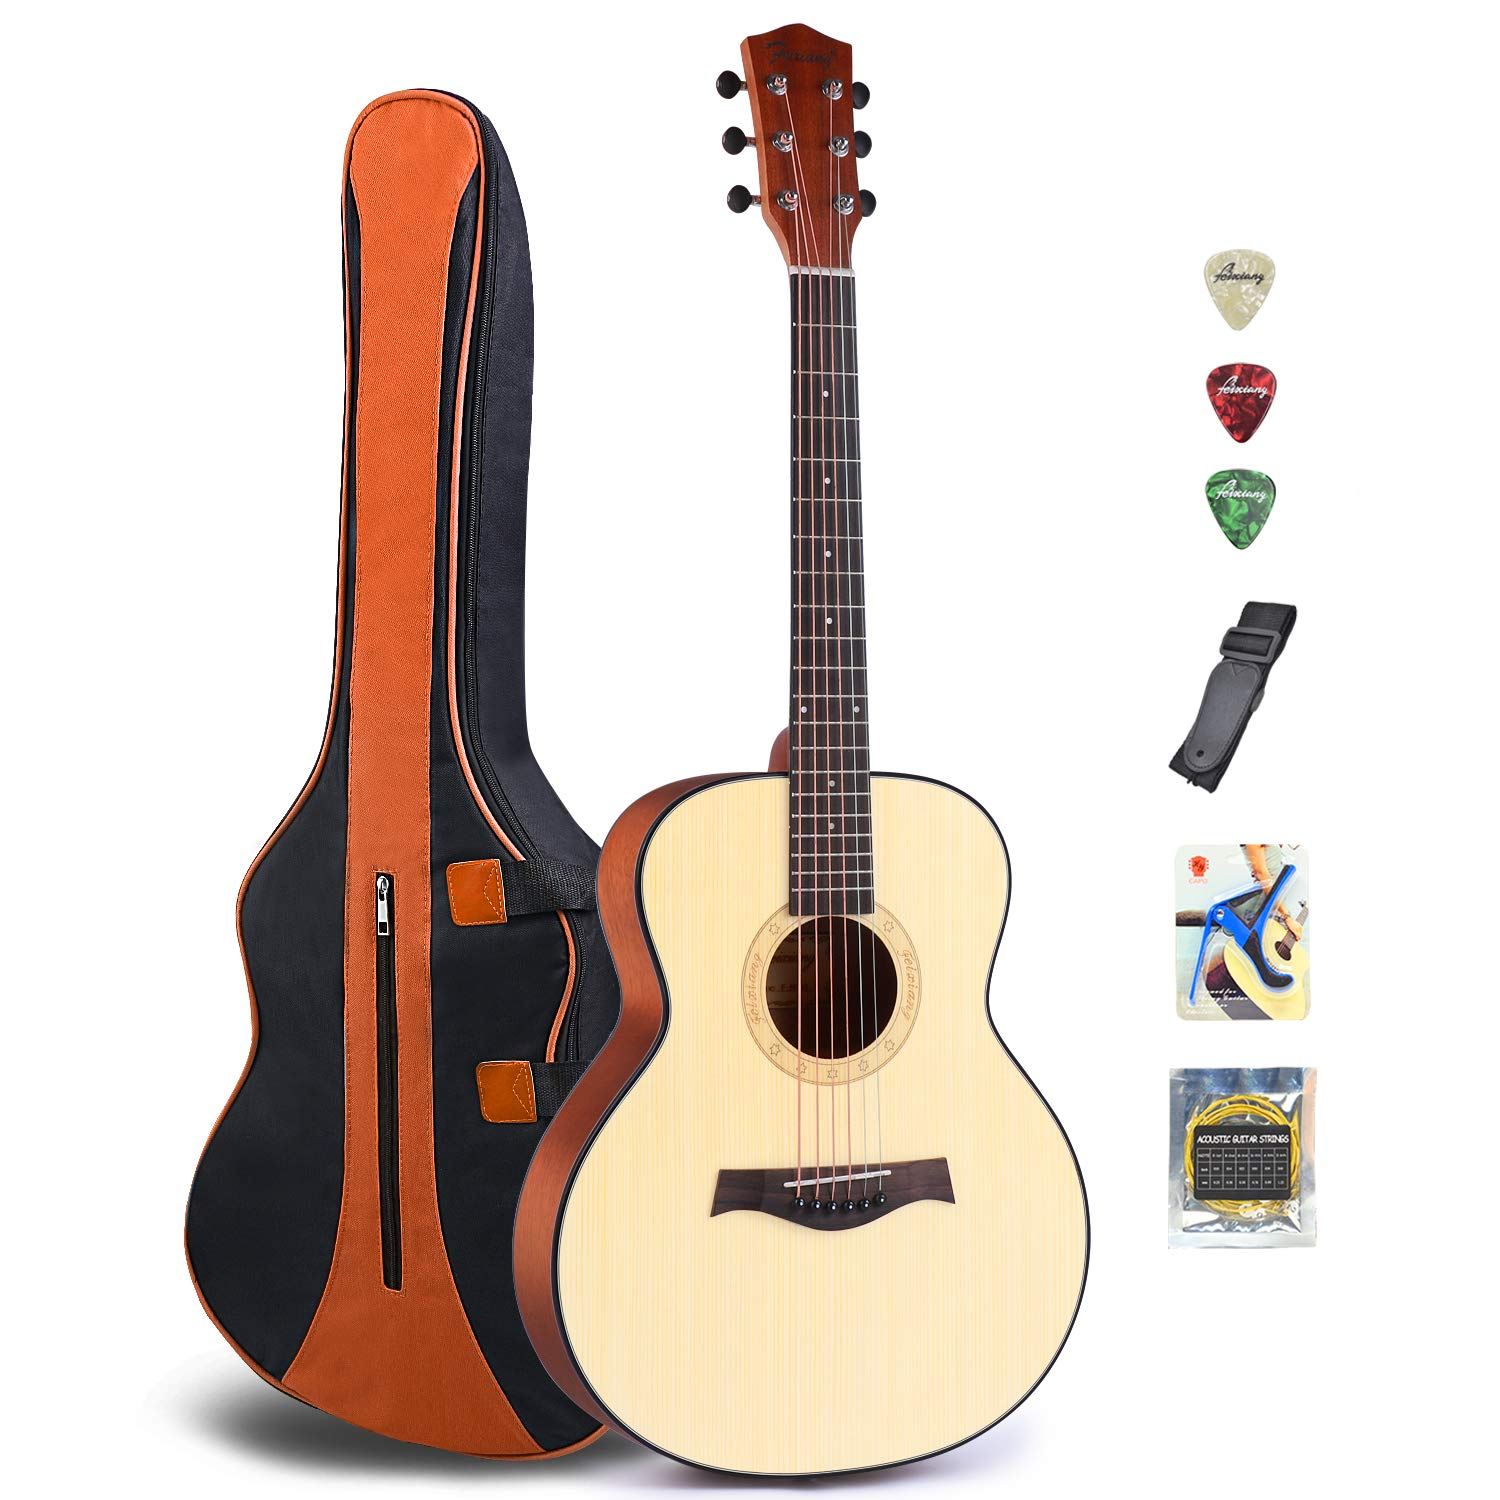 9f9adfd1c6 Acoustic Guitar 36 Inch Classical Travel Guitar Bundle with Gig Bag Capo  Strings Strap Picks (